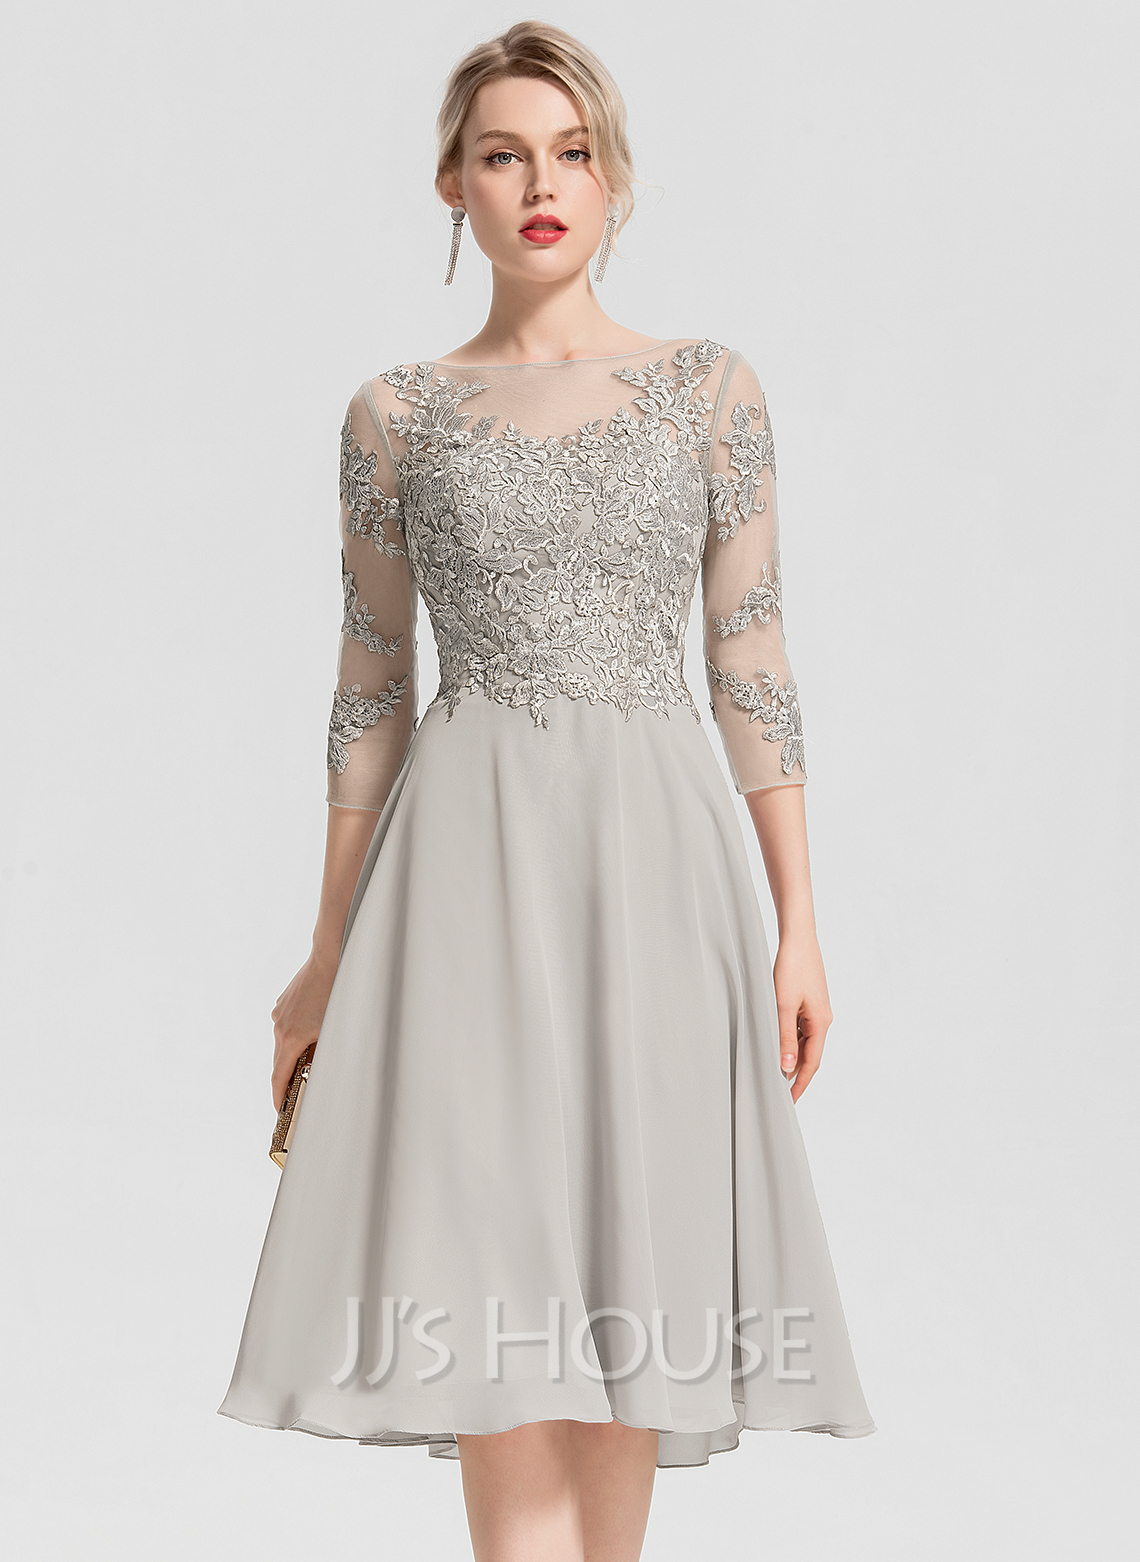 5966ac421dd8 A-Line Princess Scoop Neck Knee-Length Chiffon Cocktail Dress With Beading  Appliques. Loading zoom